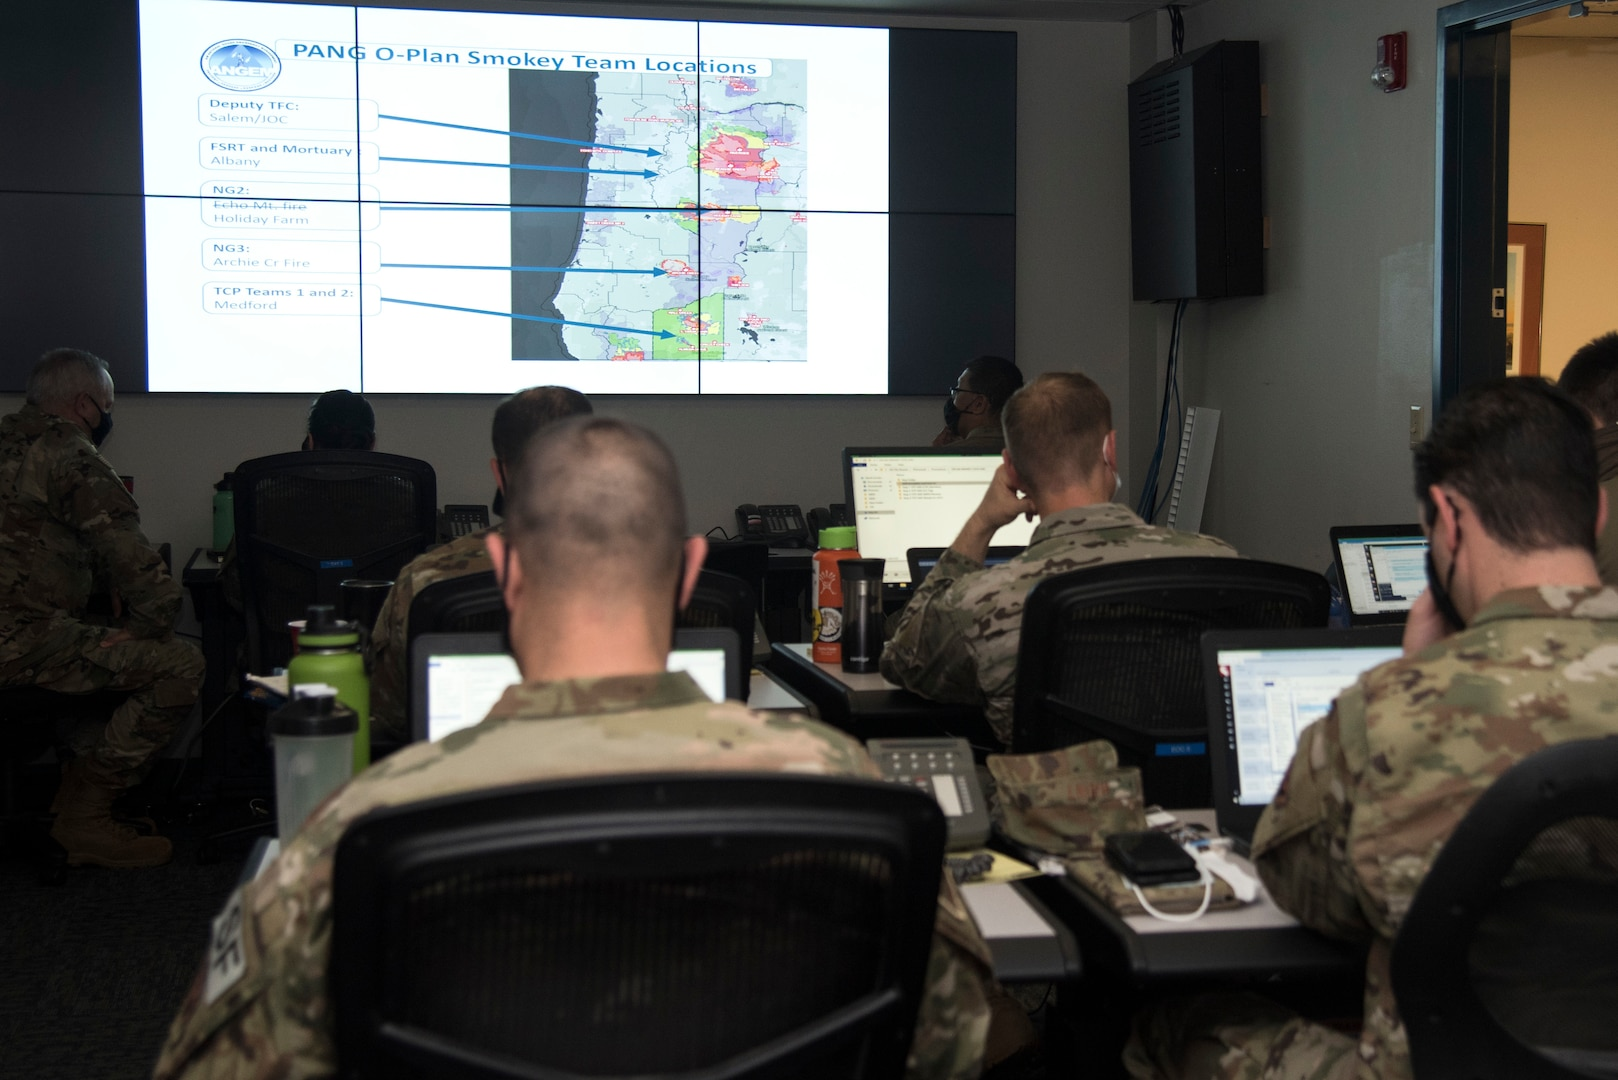 Guardsmen from the 142nd Wing work in the Emergency Operation Center in support of Operation Plan Smokey at the Portland Air National Guard Base, Ore., Sept. 18, 2020. The EOC team communicates with the Oregon Joint Operation Center to provide emergency management for scenarios such as wildfires.